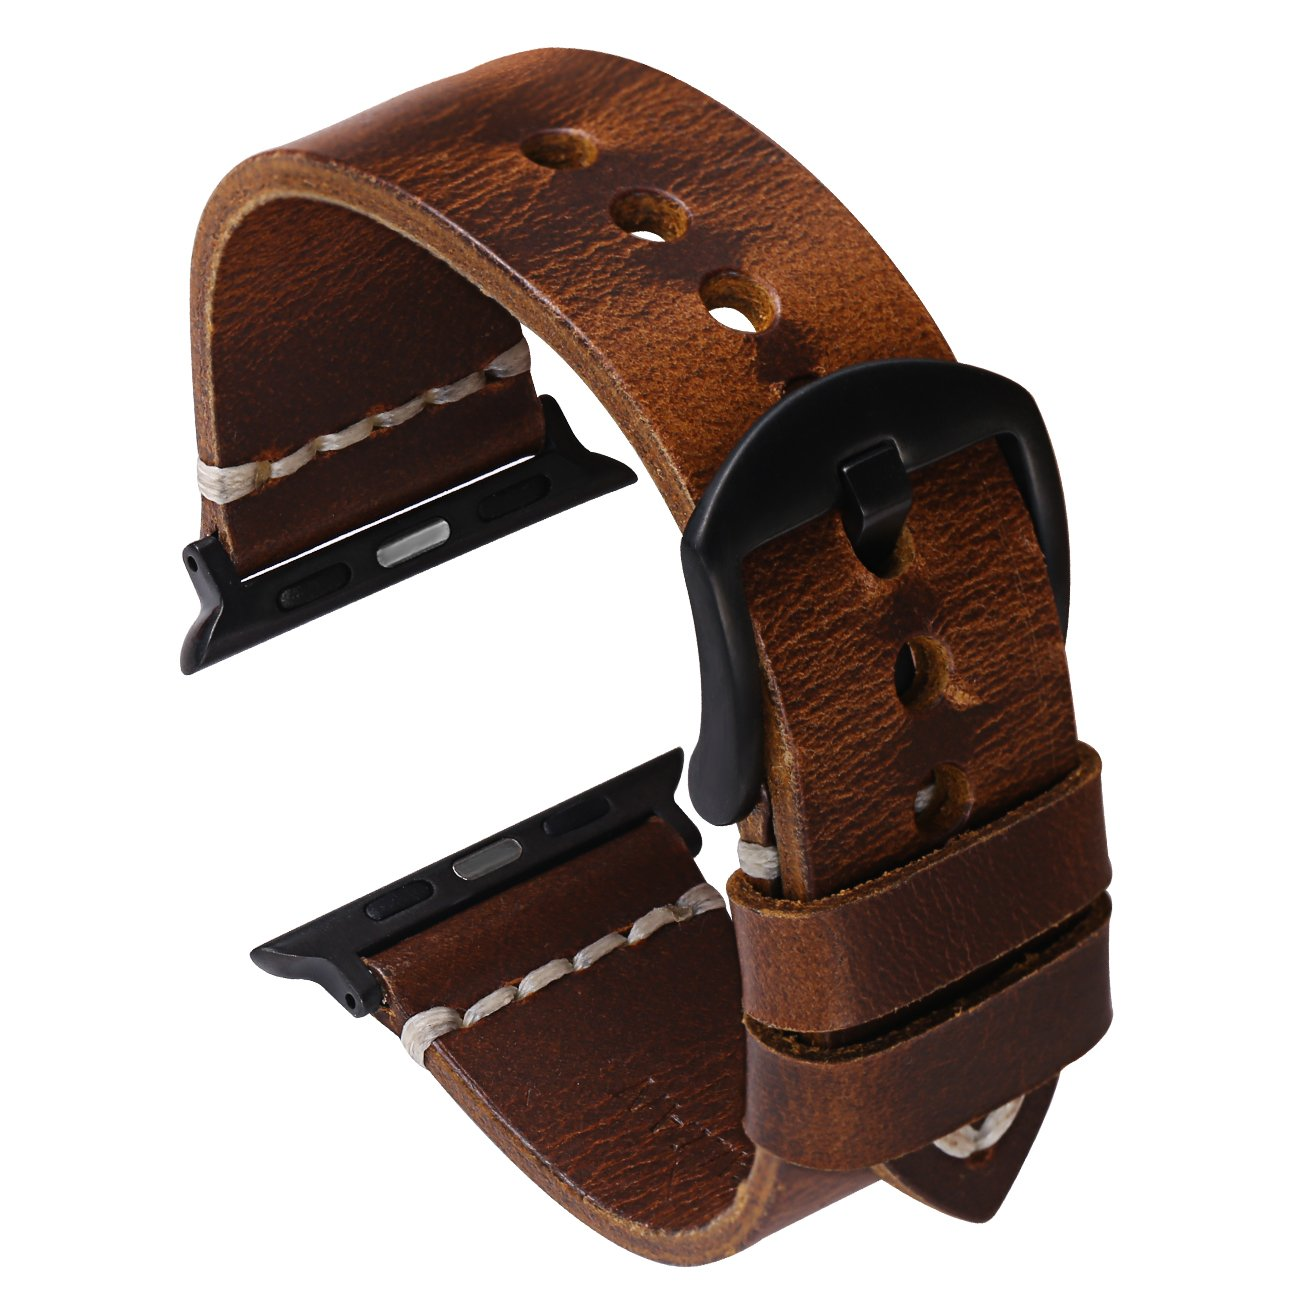 Oil Wax Leather Strap Watchband for Apple Watch Band 38mm Series 3 2 1, Nike+,Sport, Edition,Dark Brown